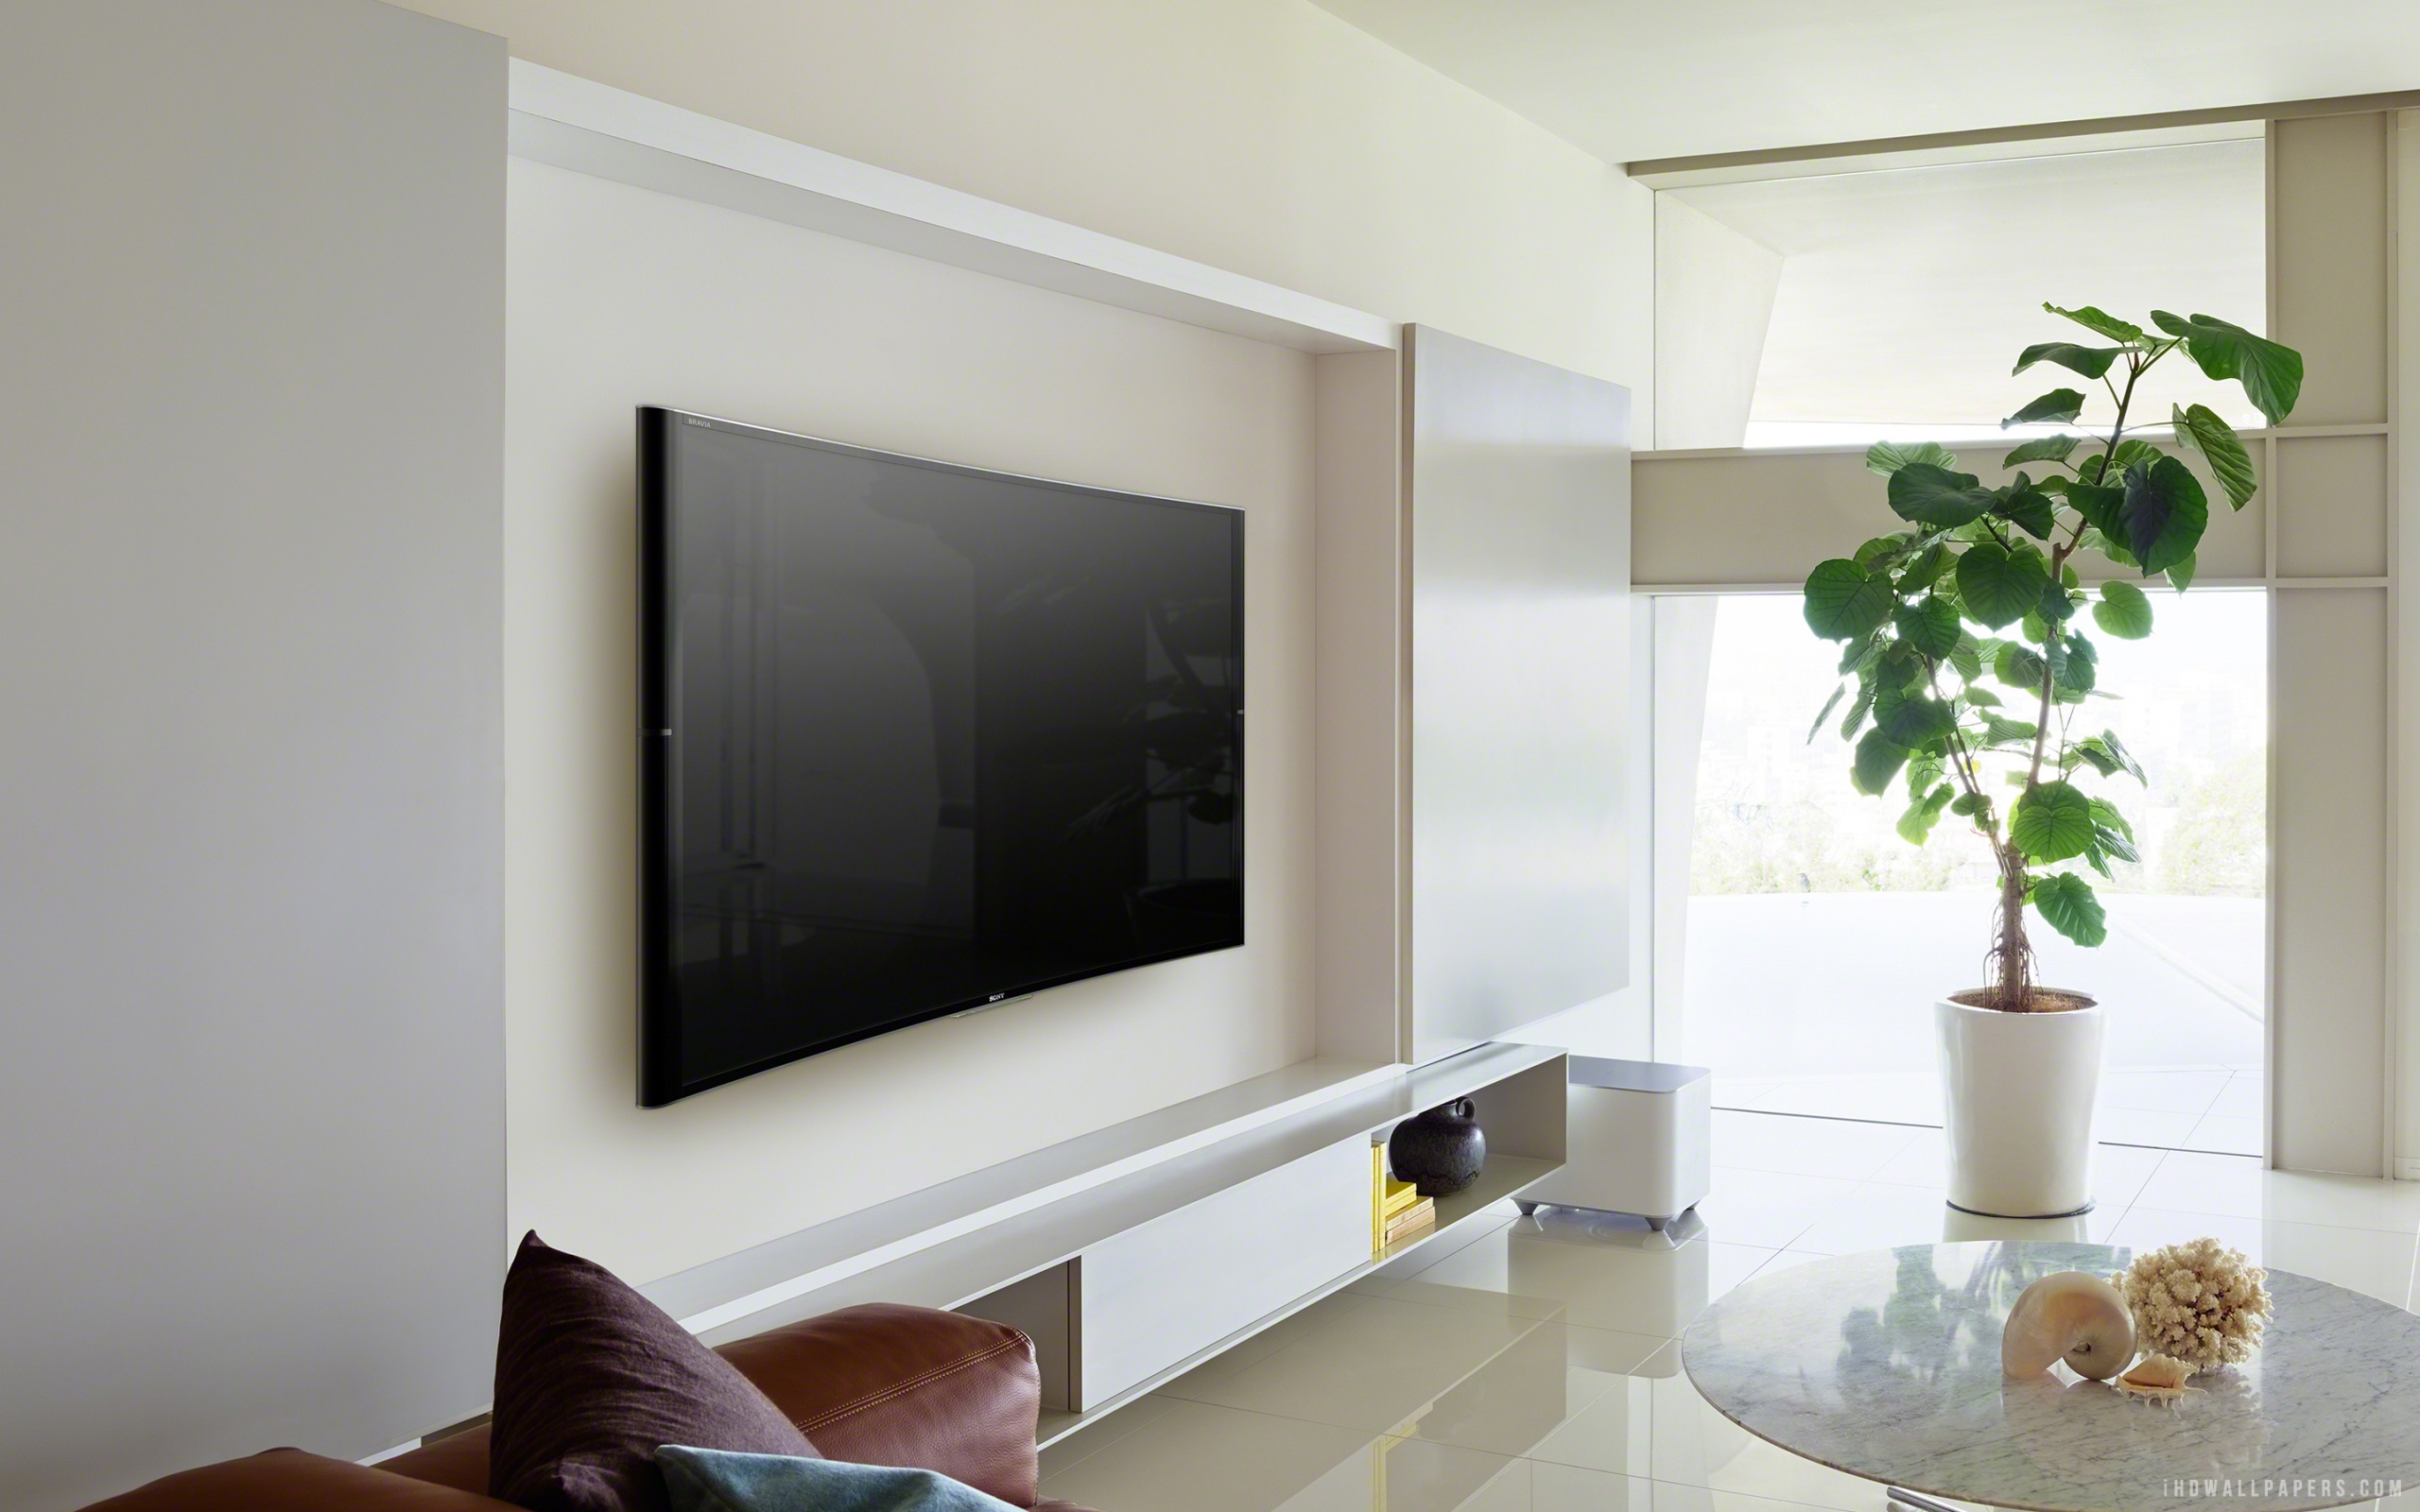 Sony wall mounted tv Flat .